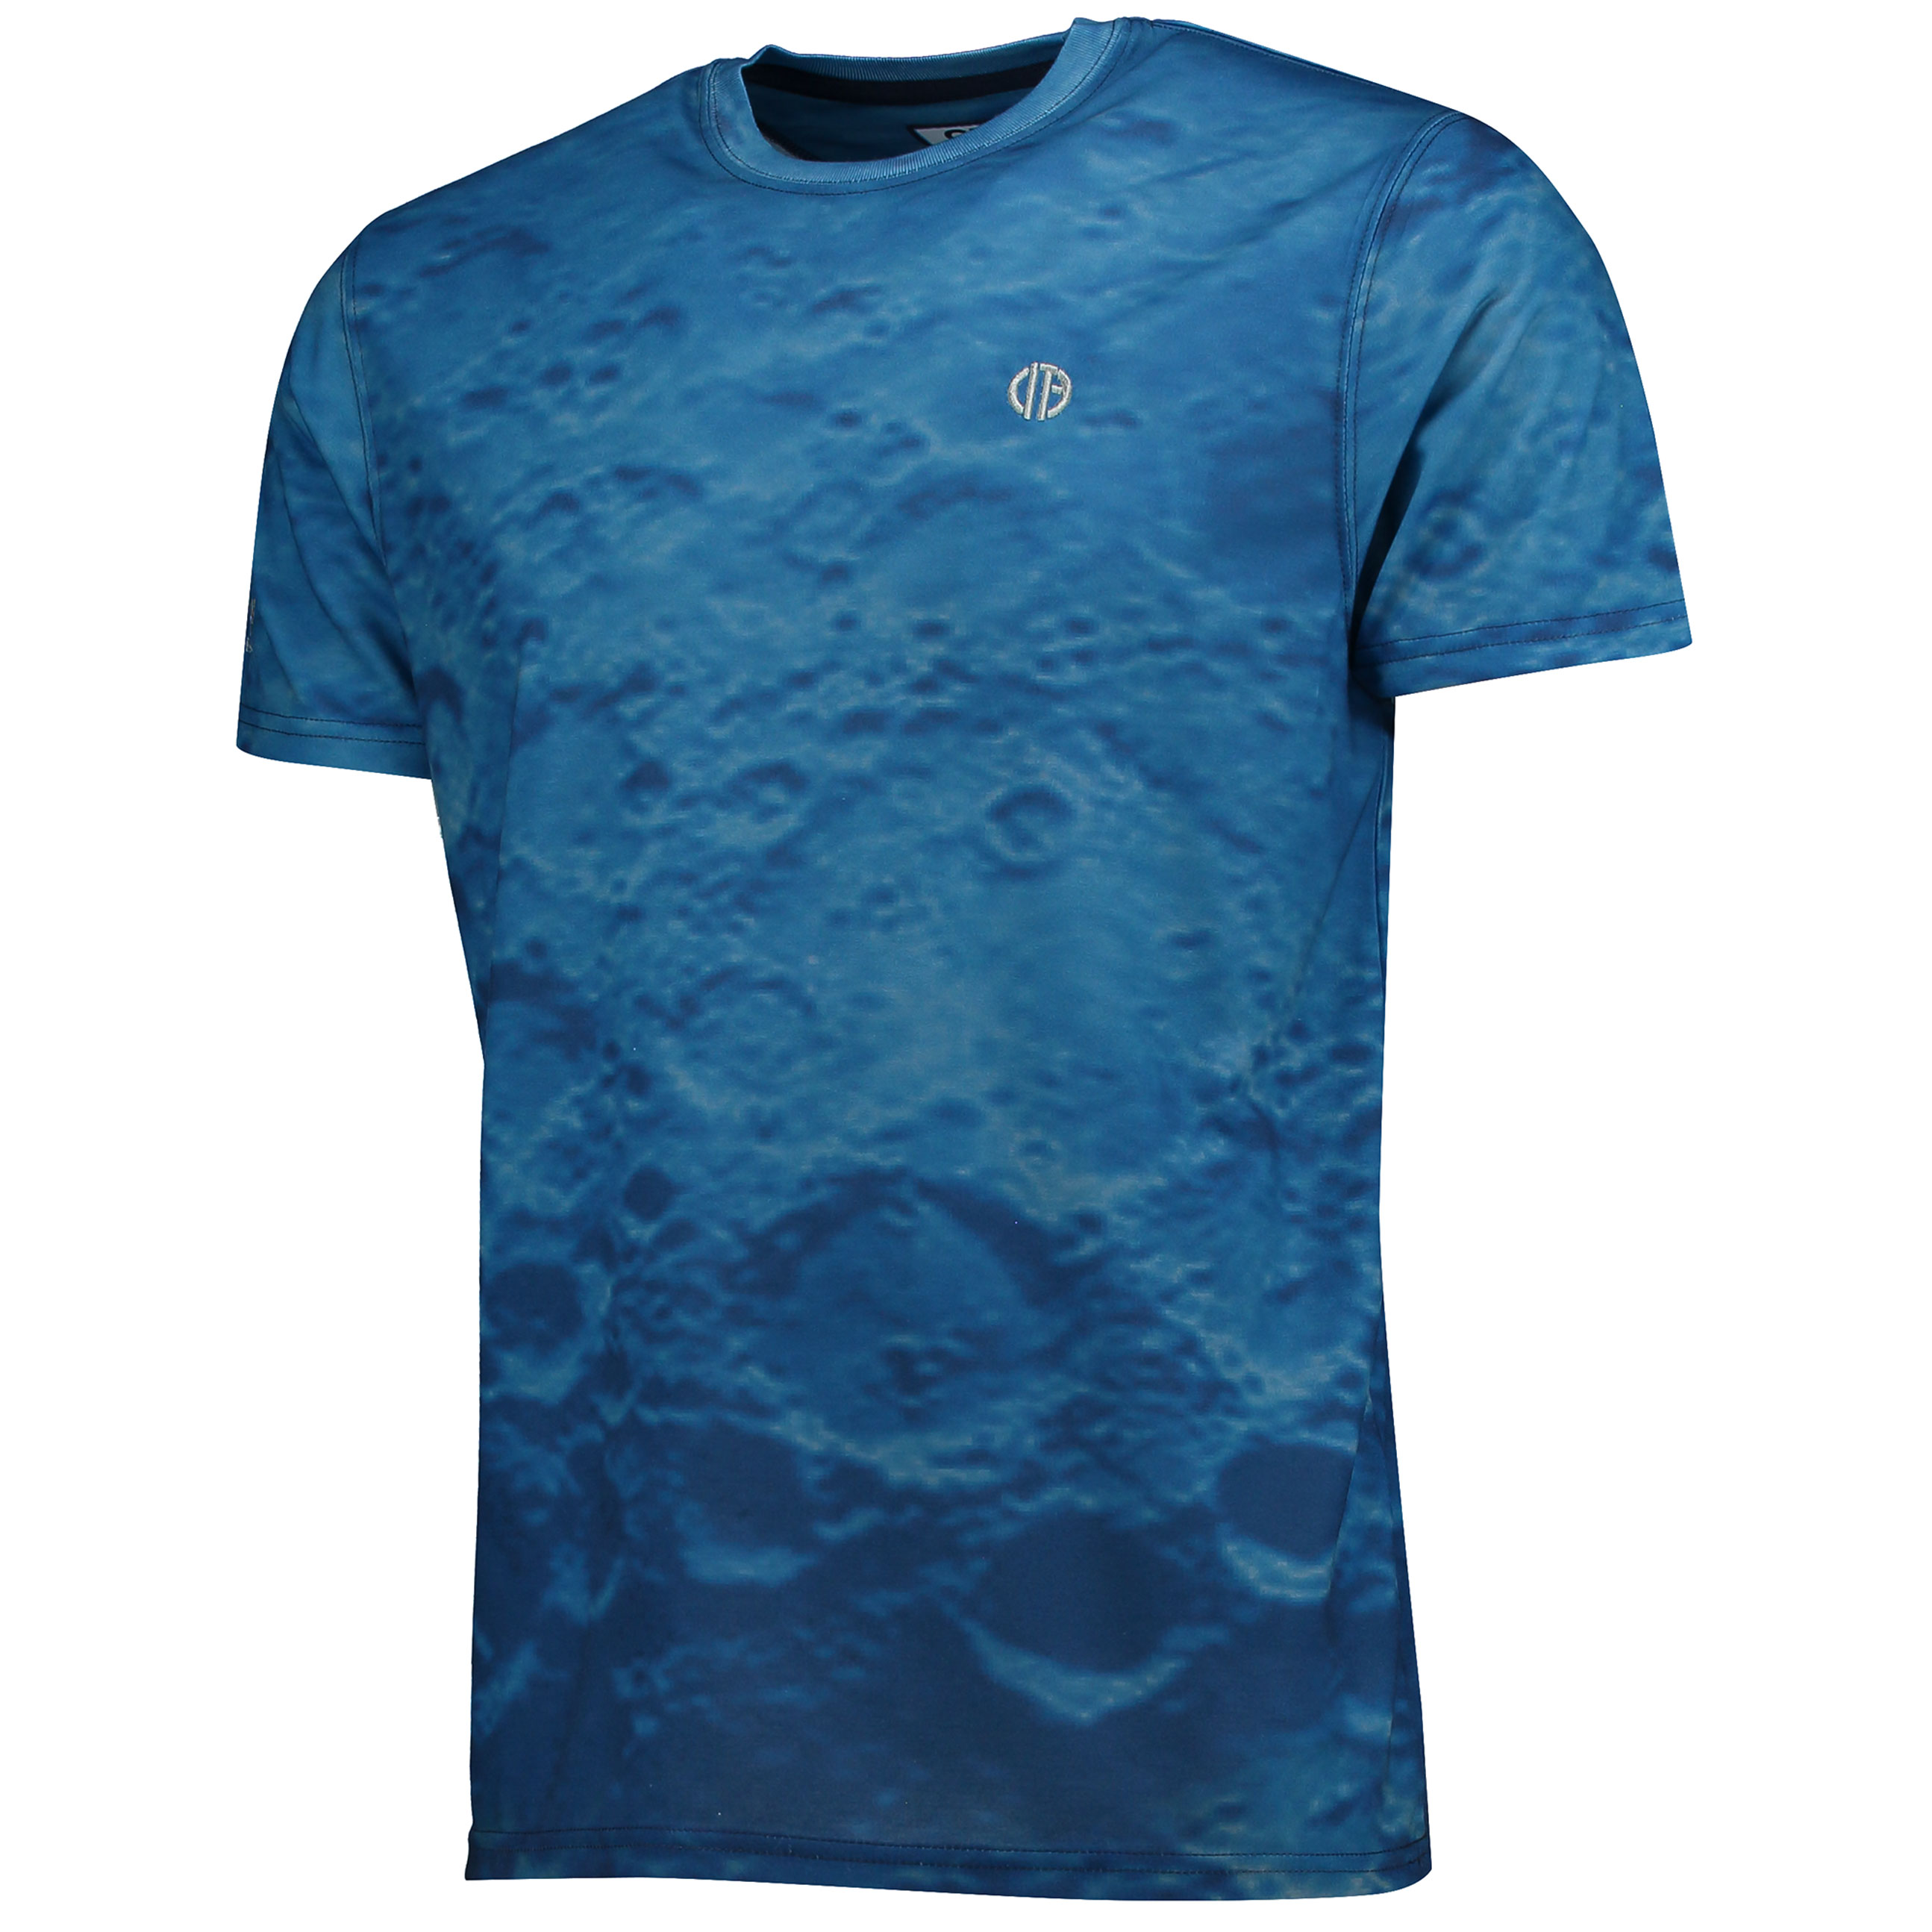 Manchester City Terrace Blue Moon T-Shirt - Navy/Sky